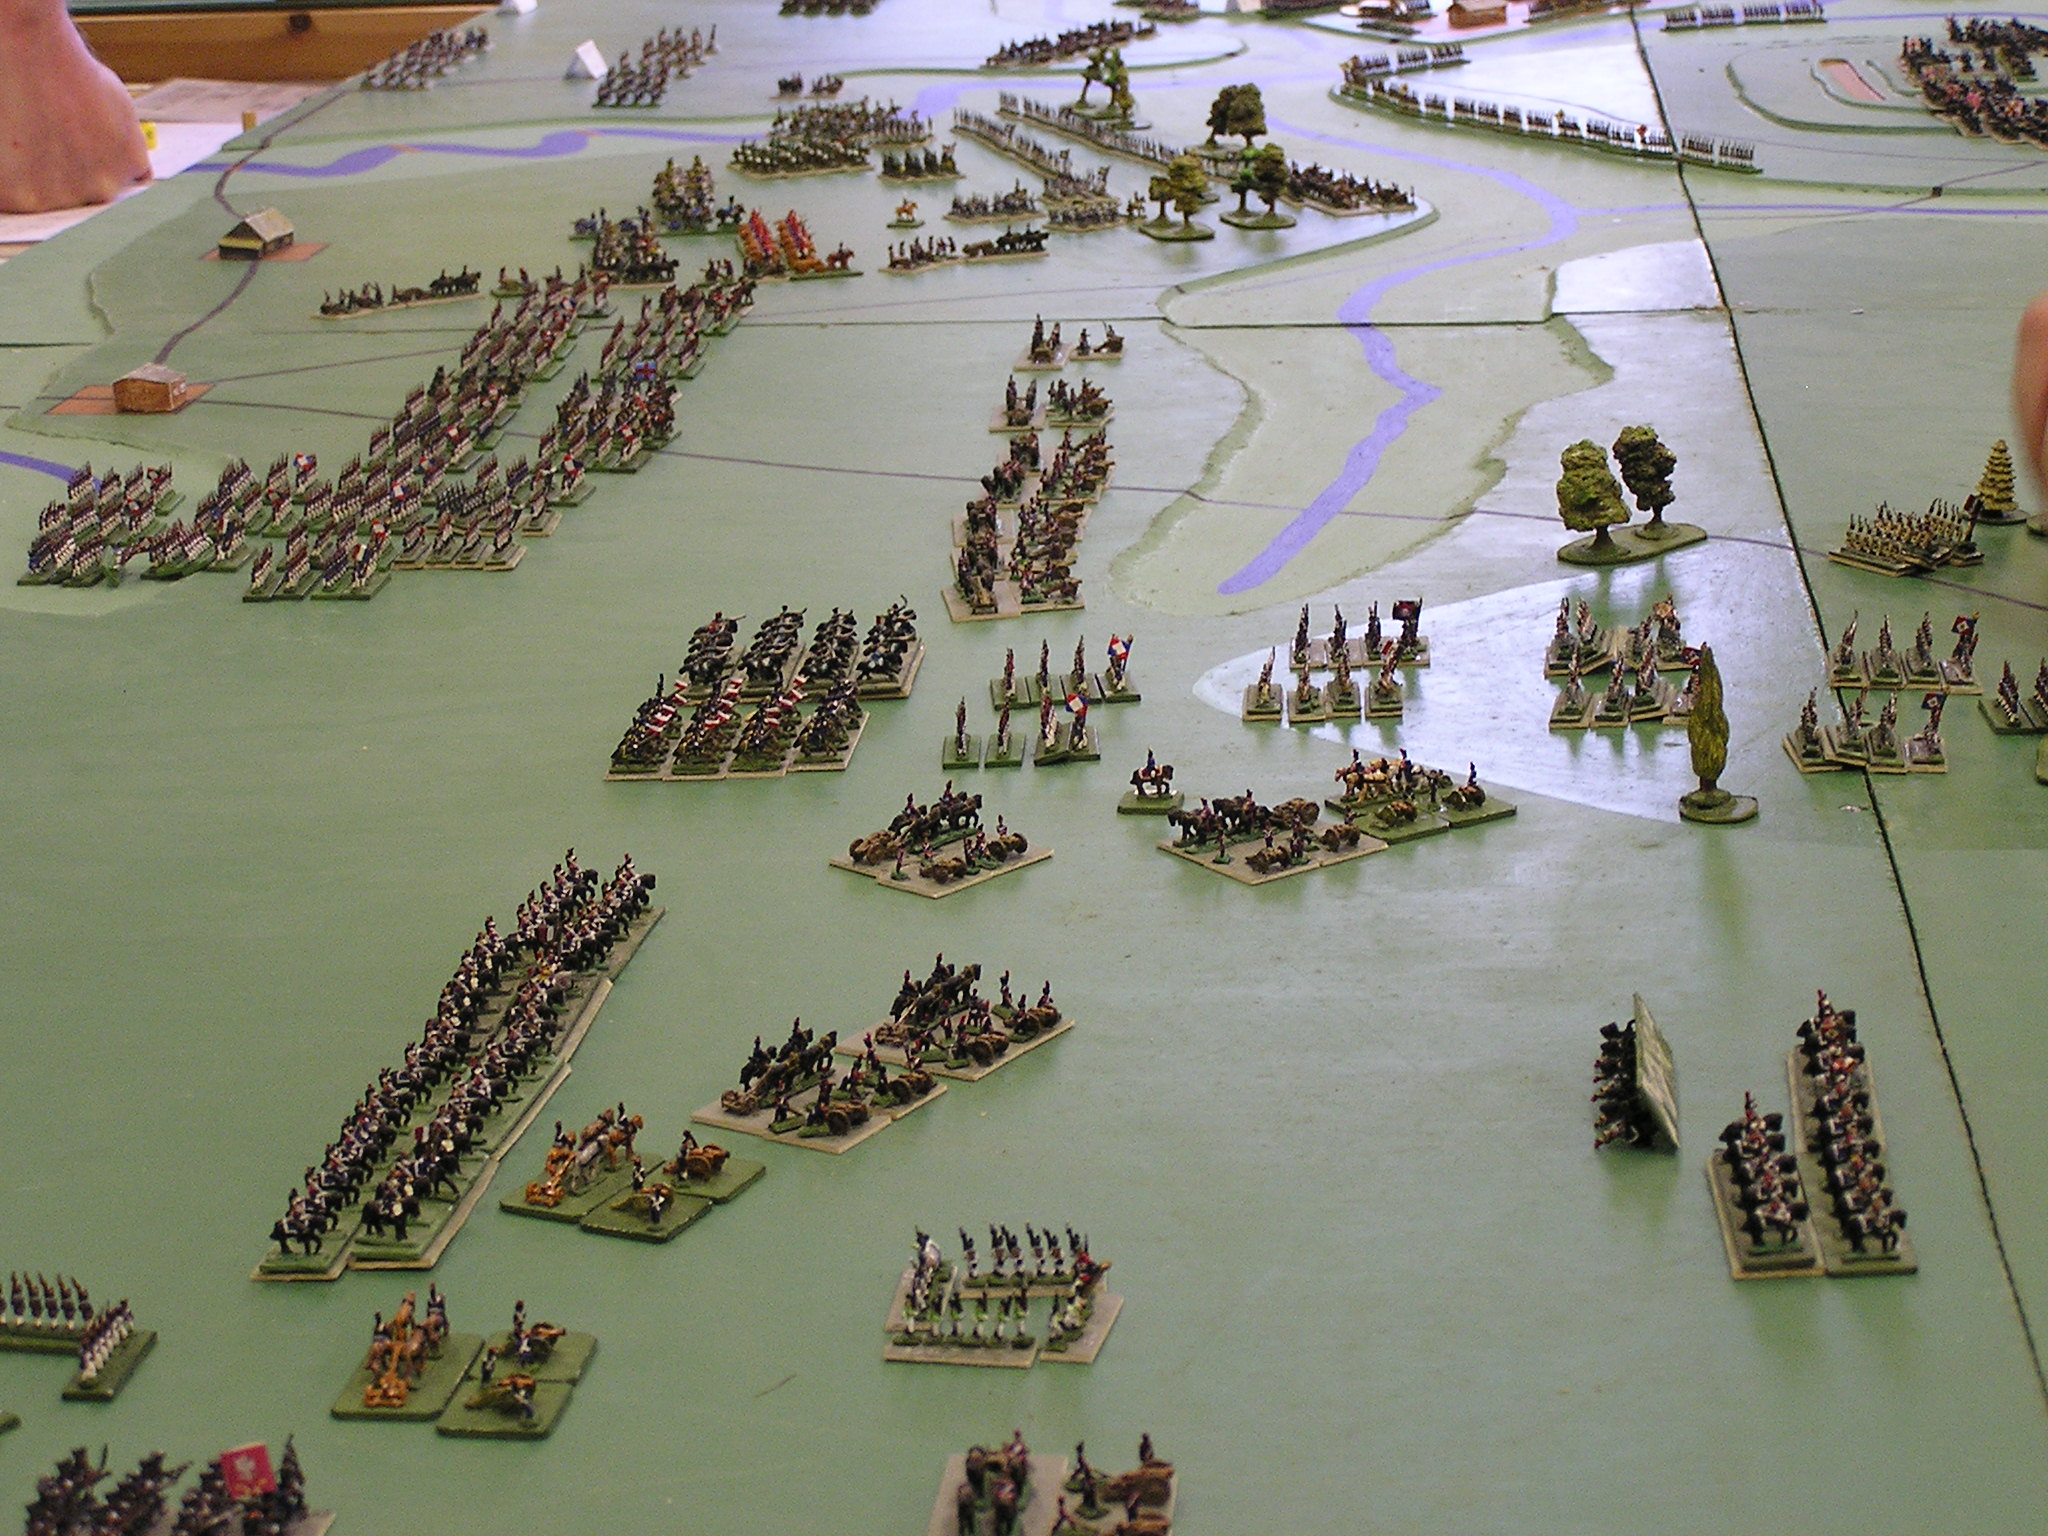 French cavalry advance